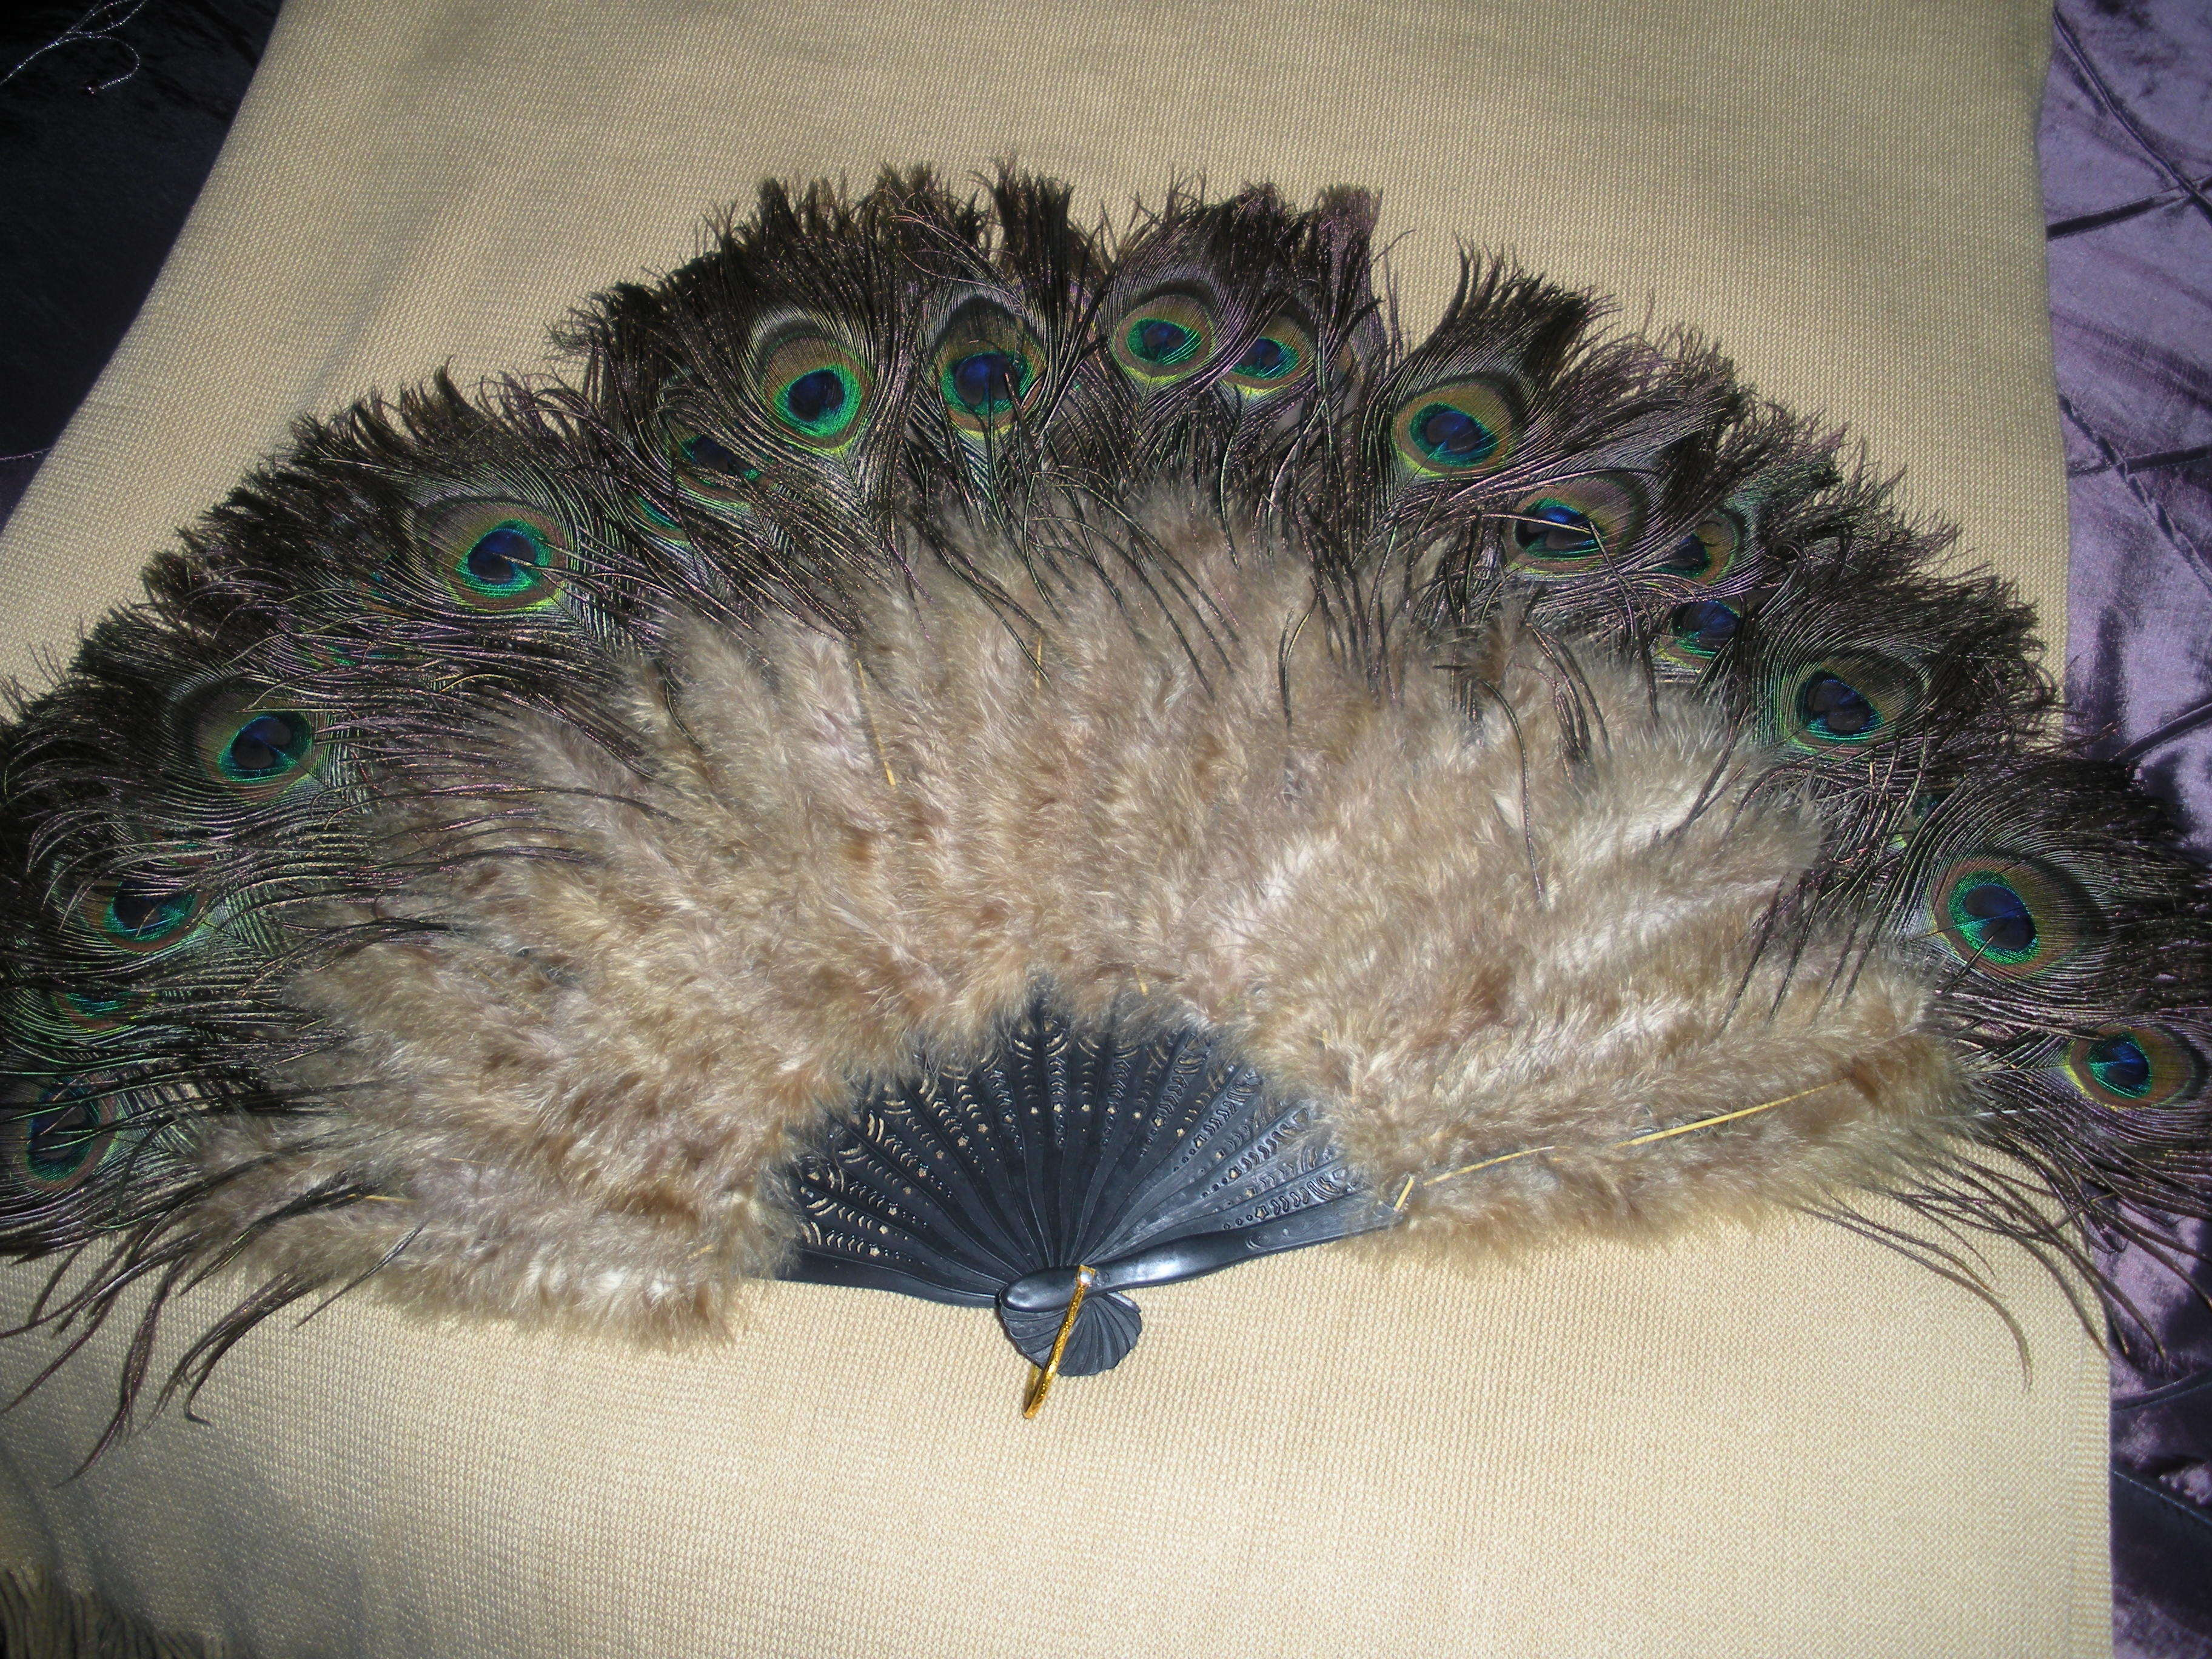 Fan, Peacock feather